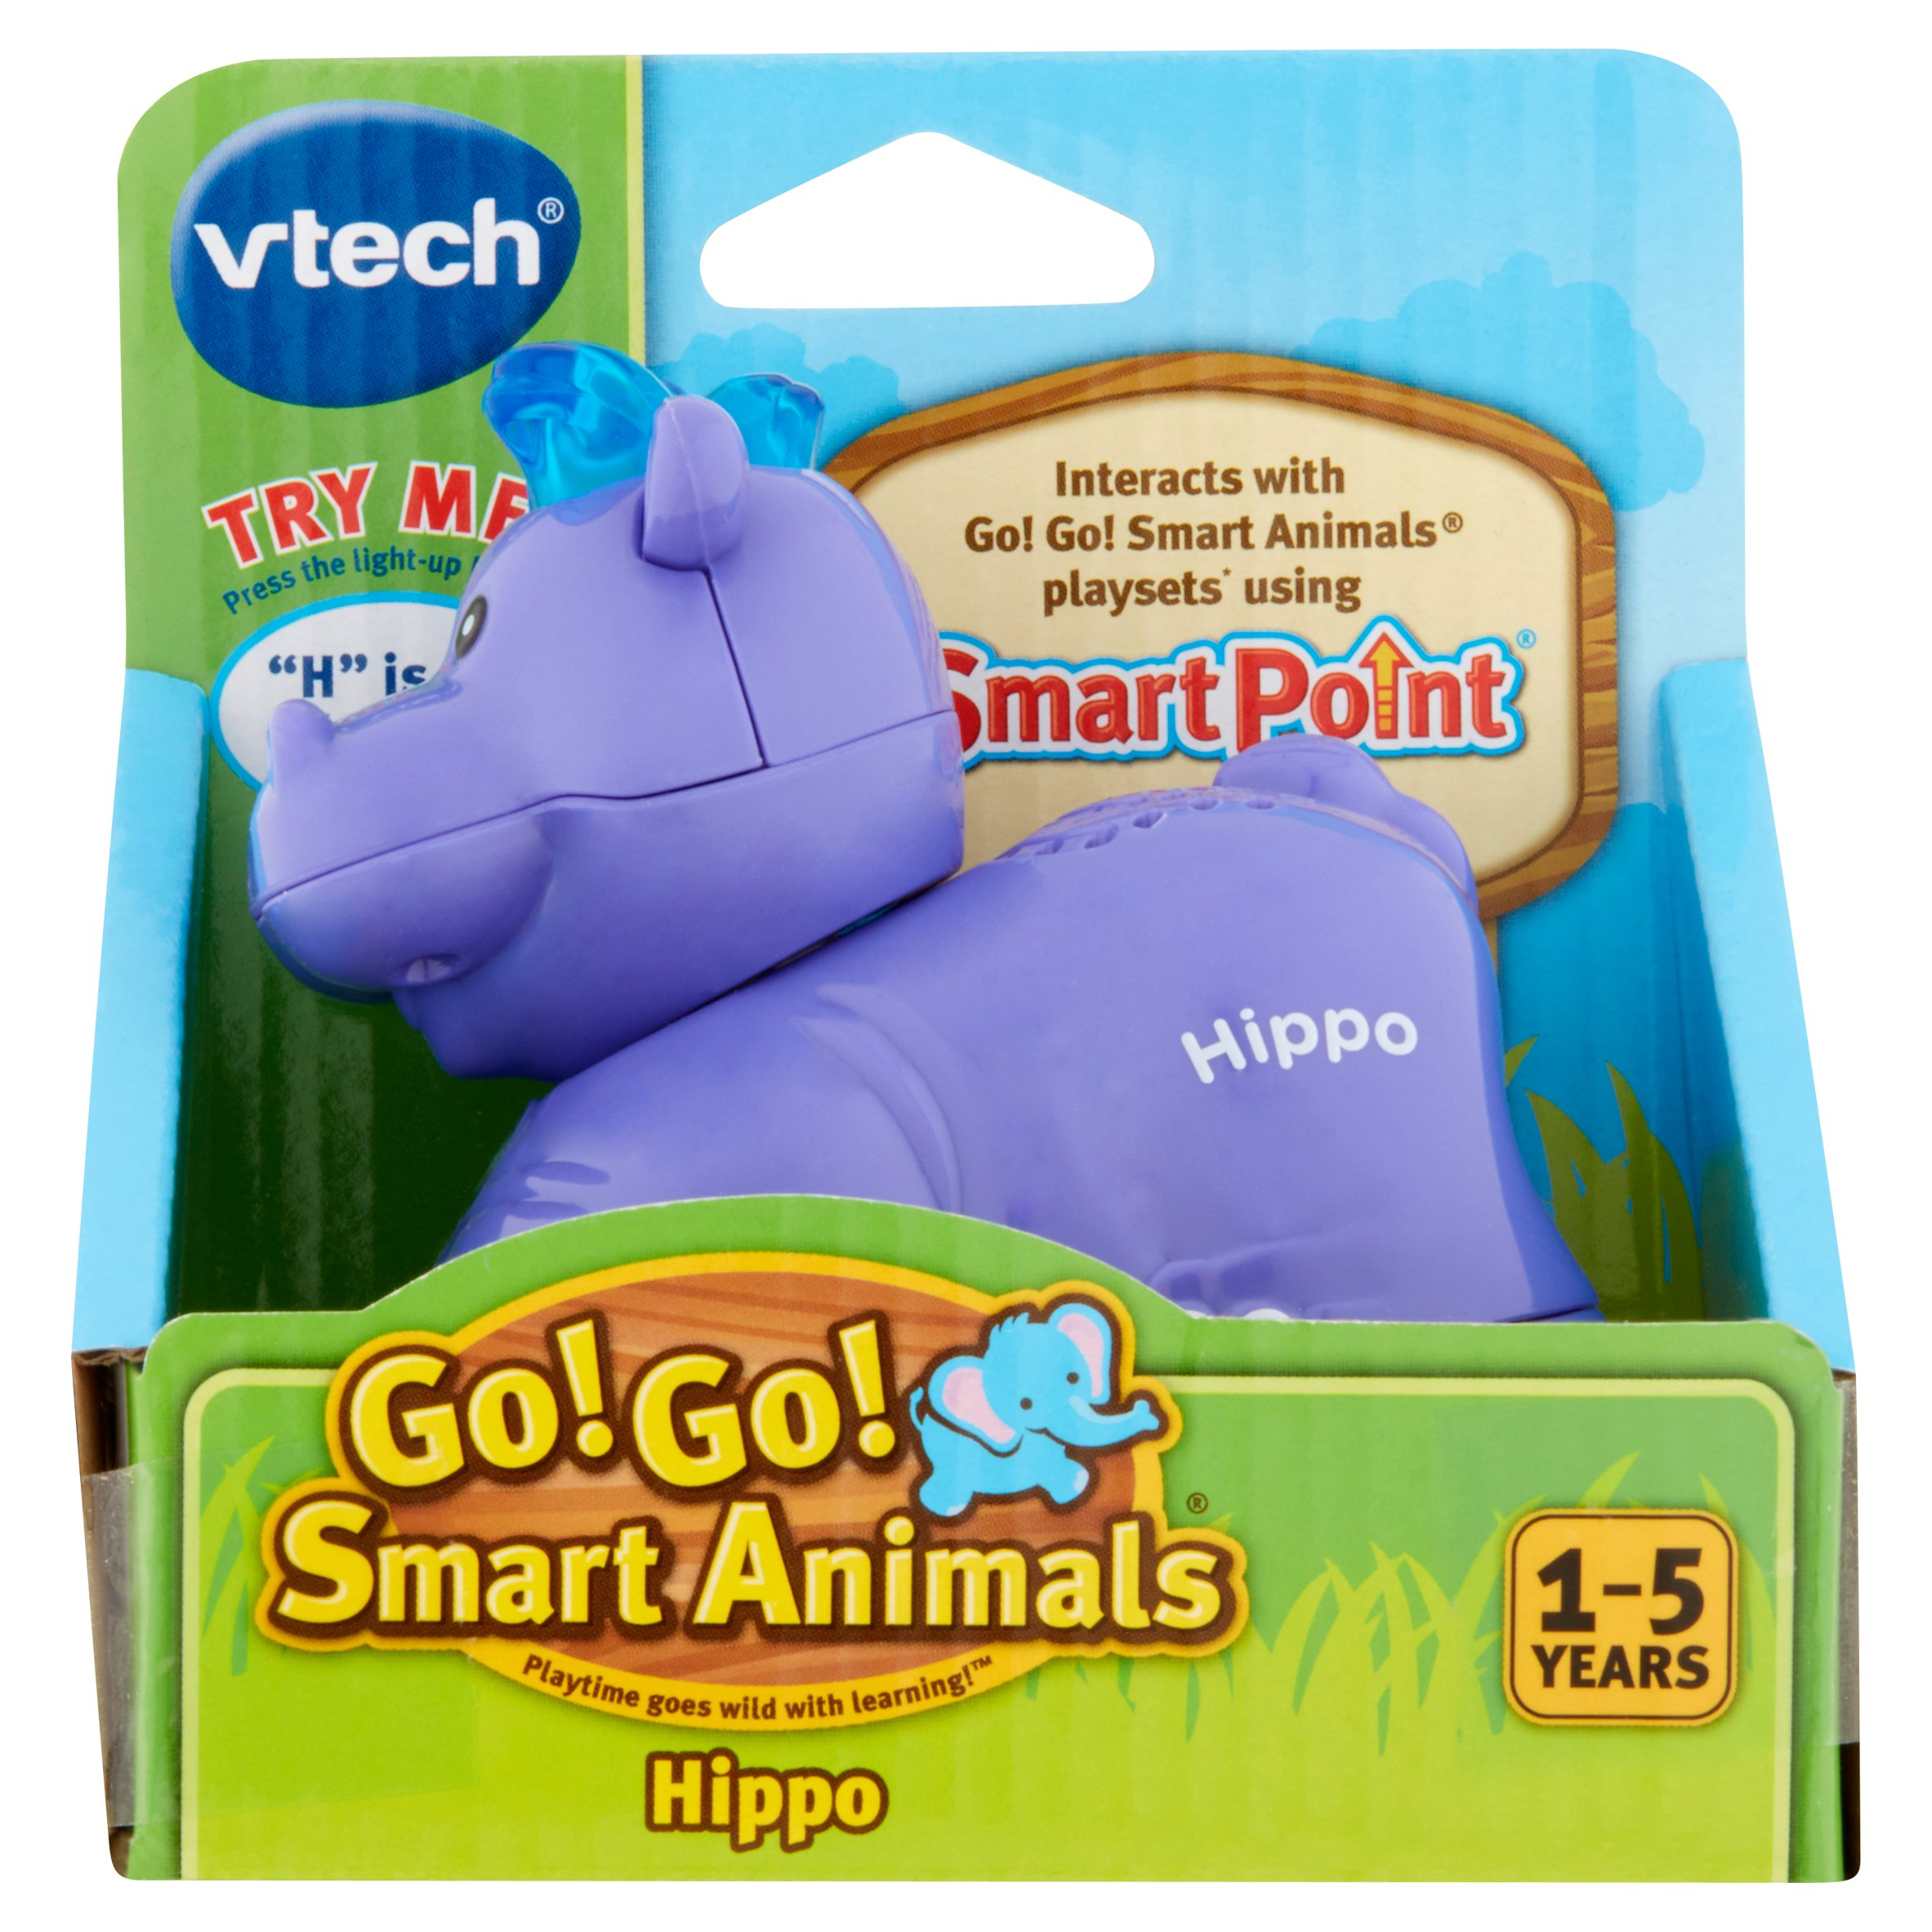 VTech Go! Go! Smart Animals Hippo Toy 1-5 years by VTech Electronics North America, L.L.C.